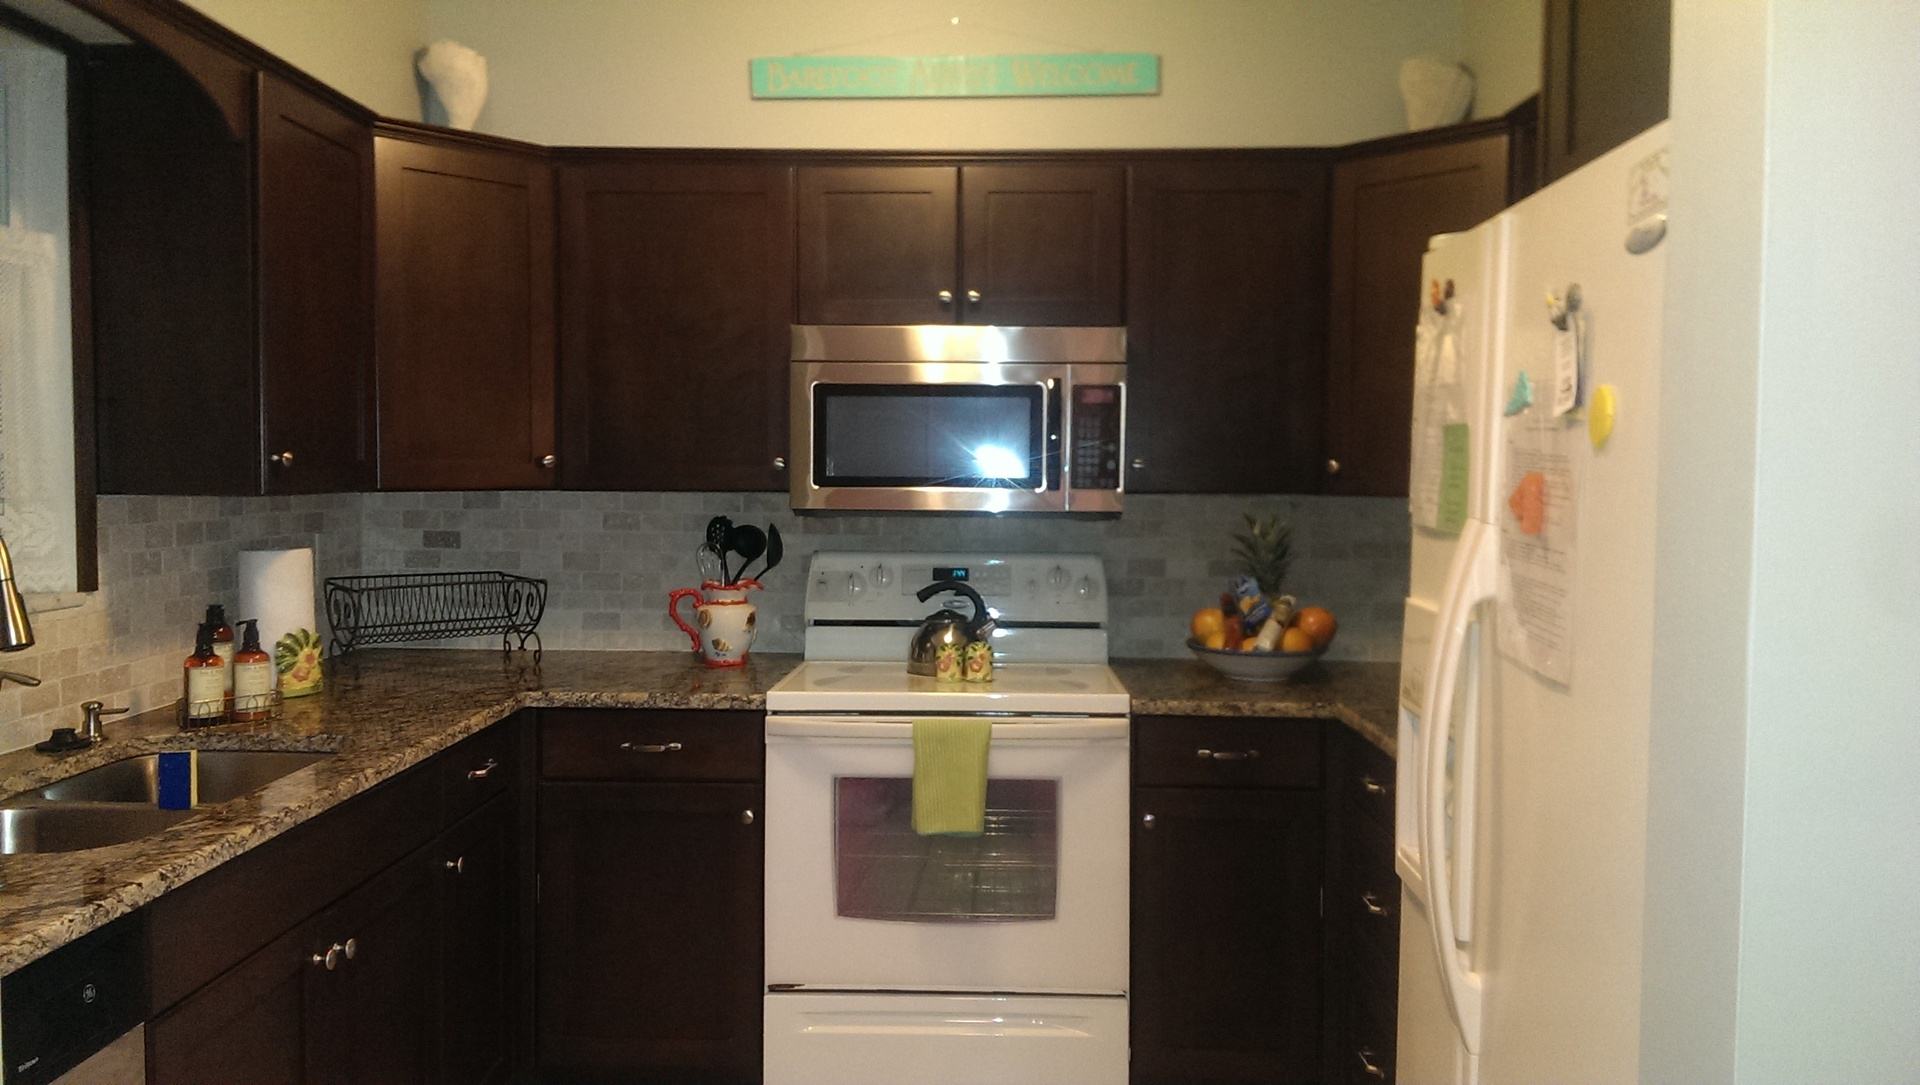 Kitchen Updated Dec. 2014